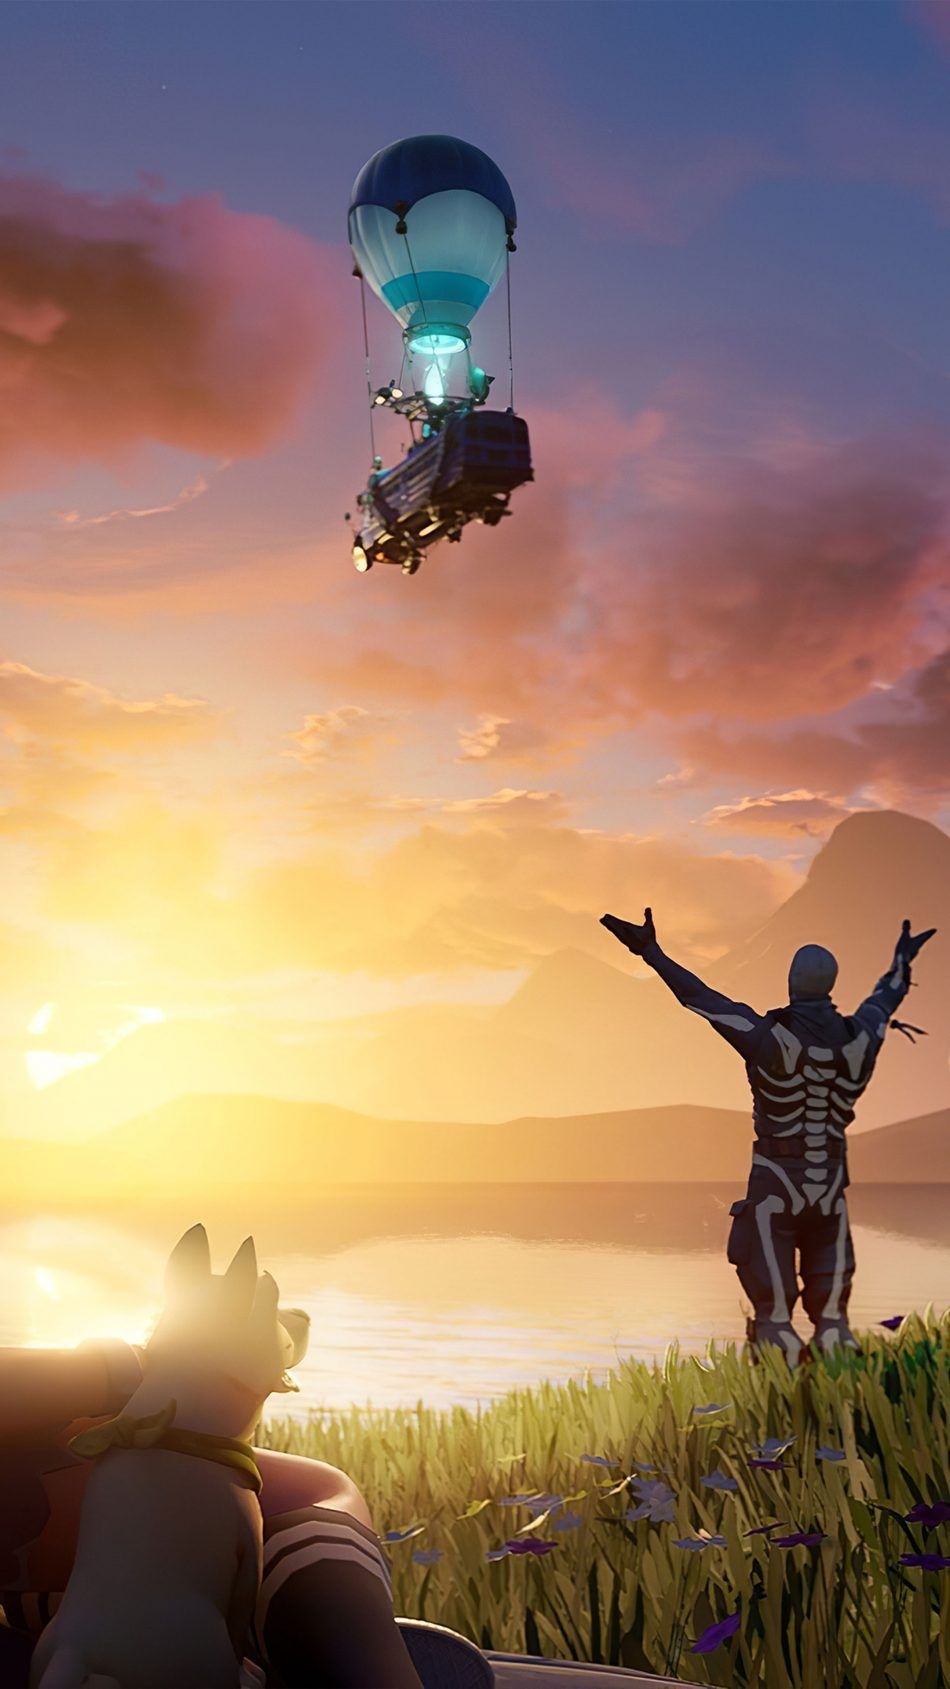 Download Fortnite Chapter 2 Free Pure 4k Ultra Hd Mobile Wallpaper